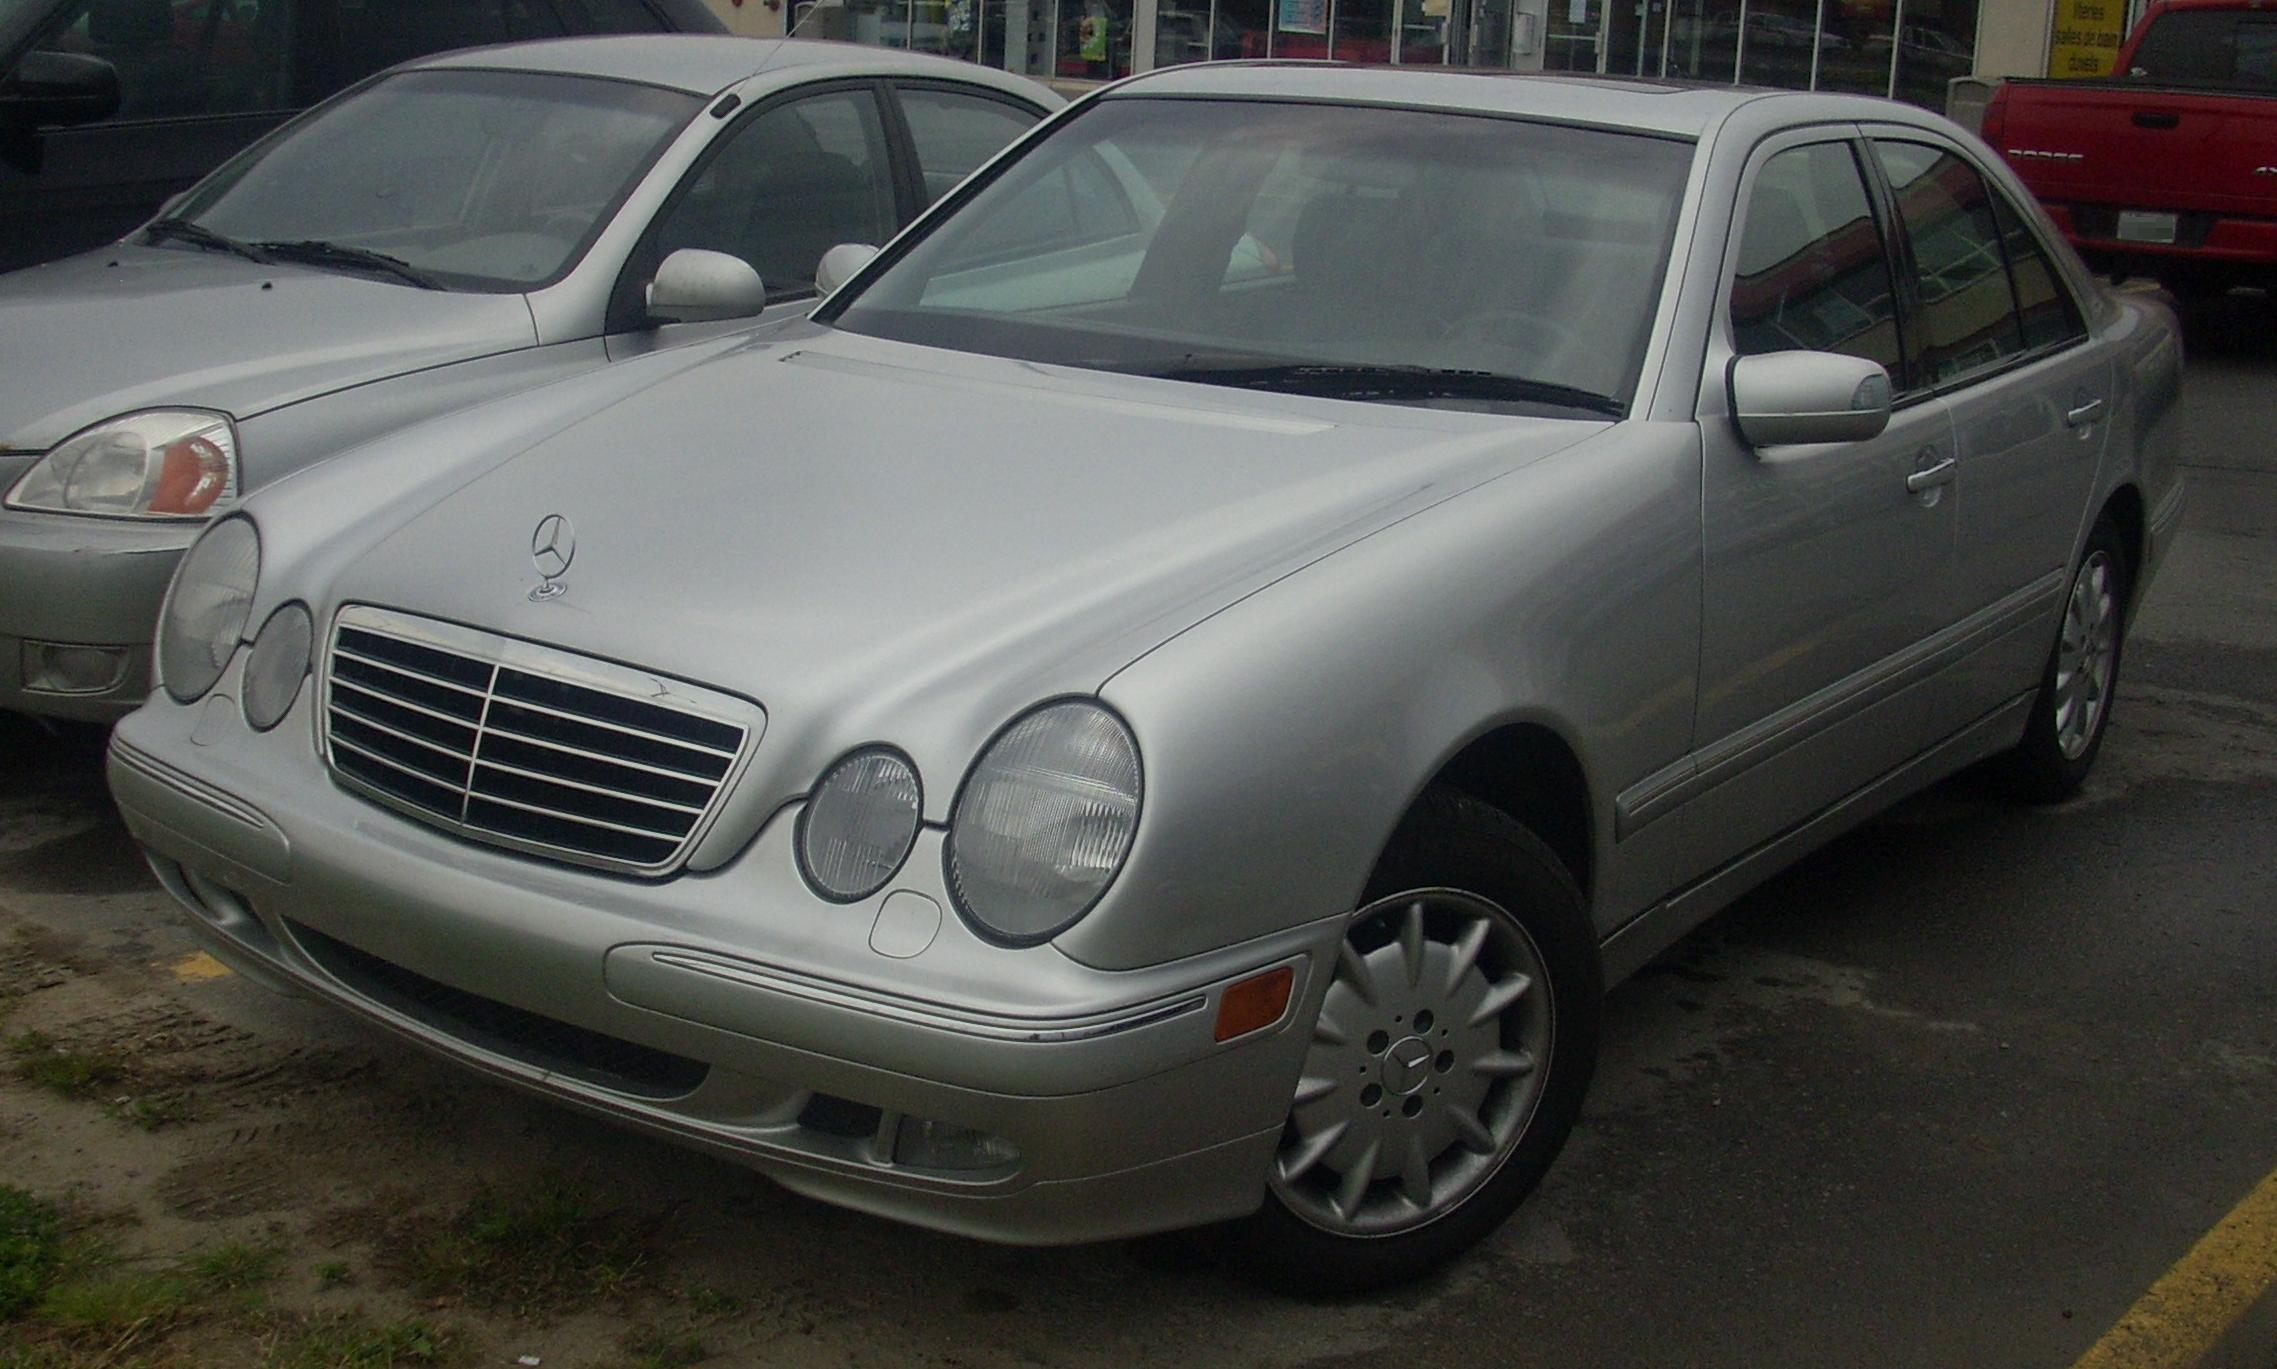 file 39 00 39 02 mercedes benz e class sedan jpg wikimedia